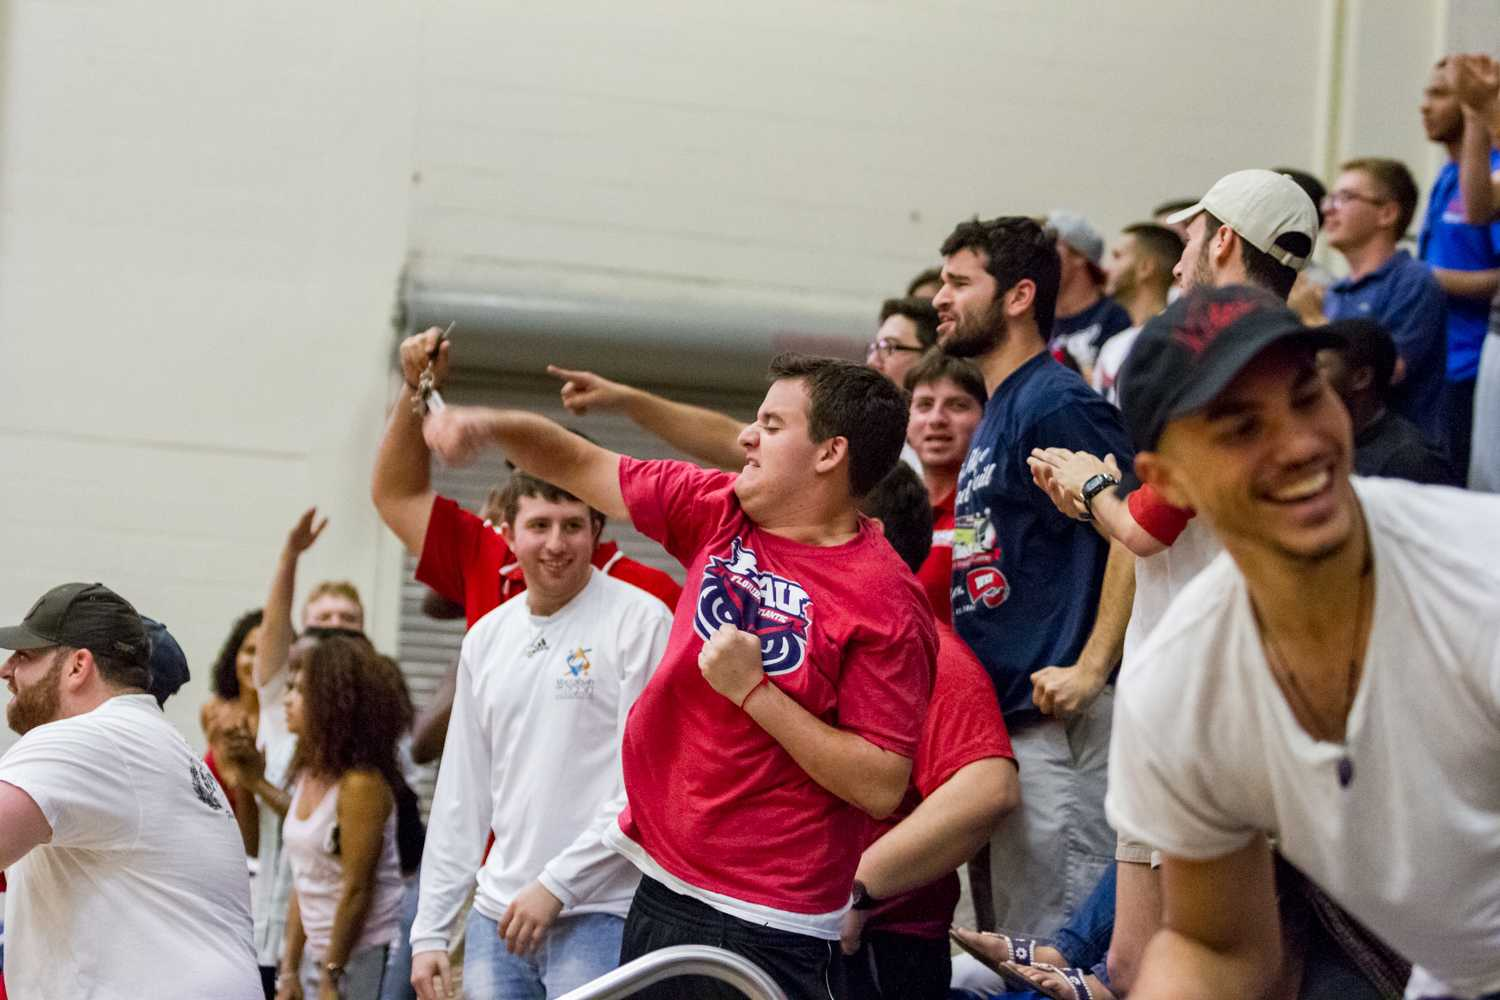 The crowd at the Burrow celebrated with few seconds left in the game as FAU won over Marshall 76-62.